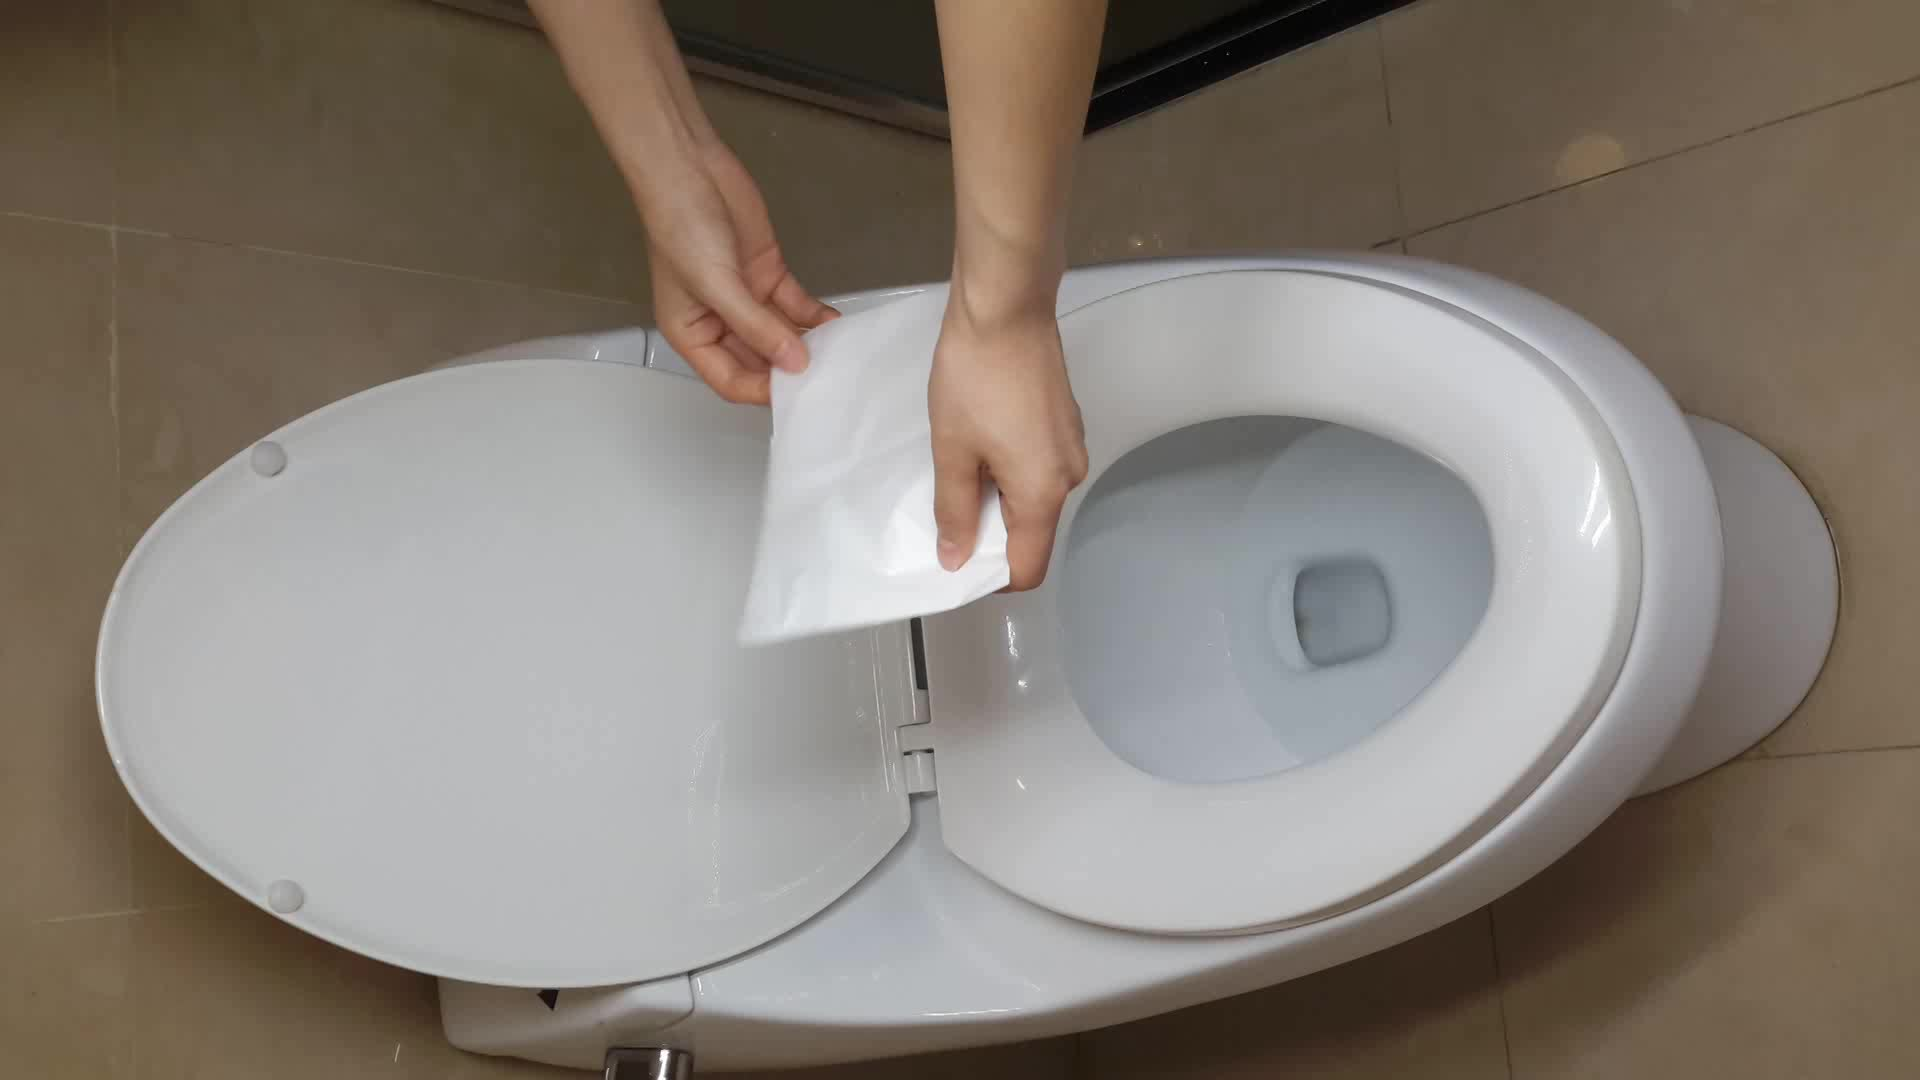 Hotel Toilets Use 1 4 Fold Flushable Paper Toilet Seat